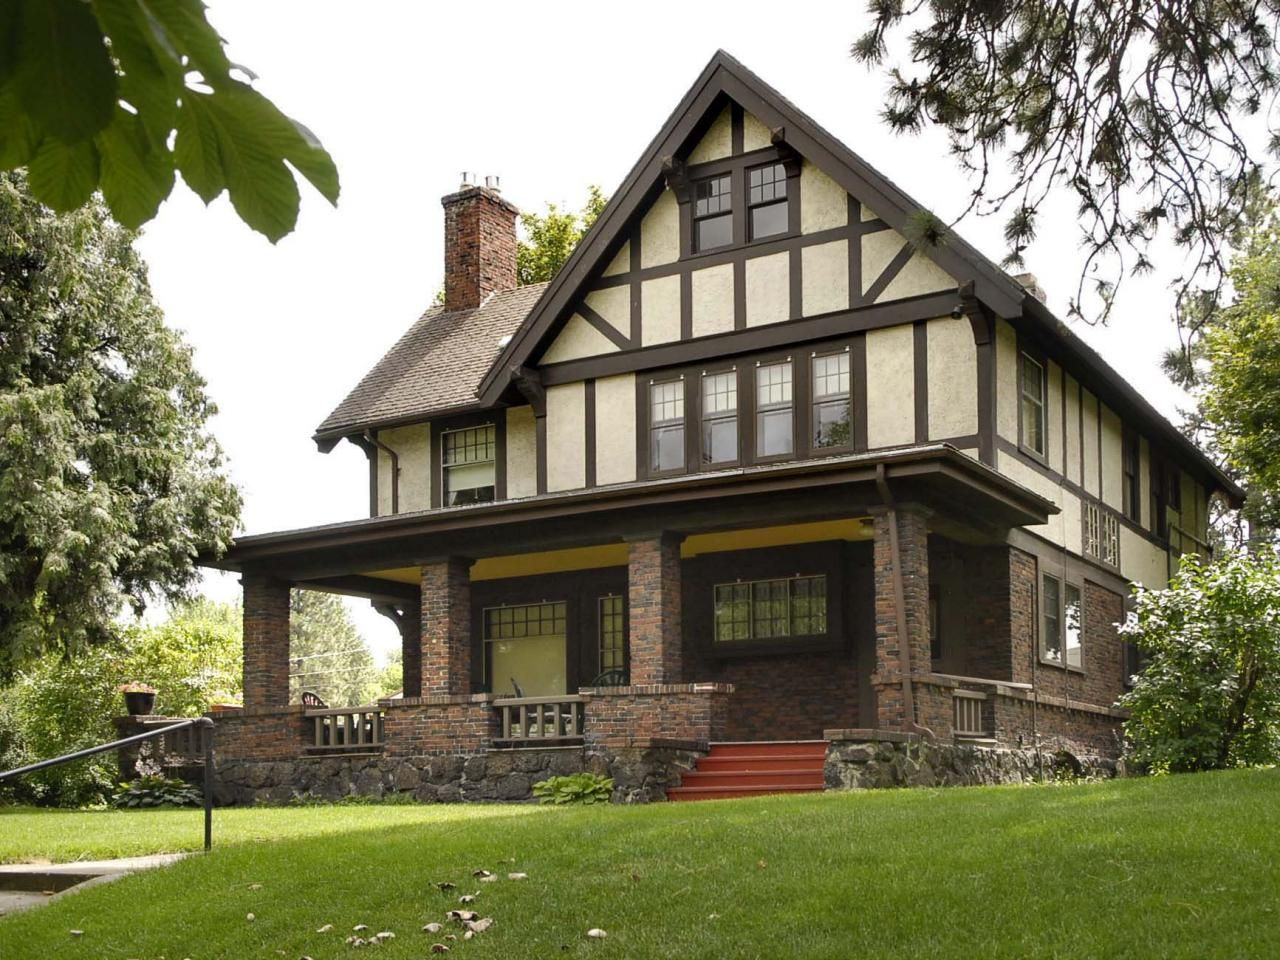 Tudor Architecture outfit your home's exterior | tudor, tudor architecture and